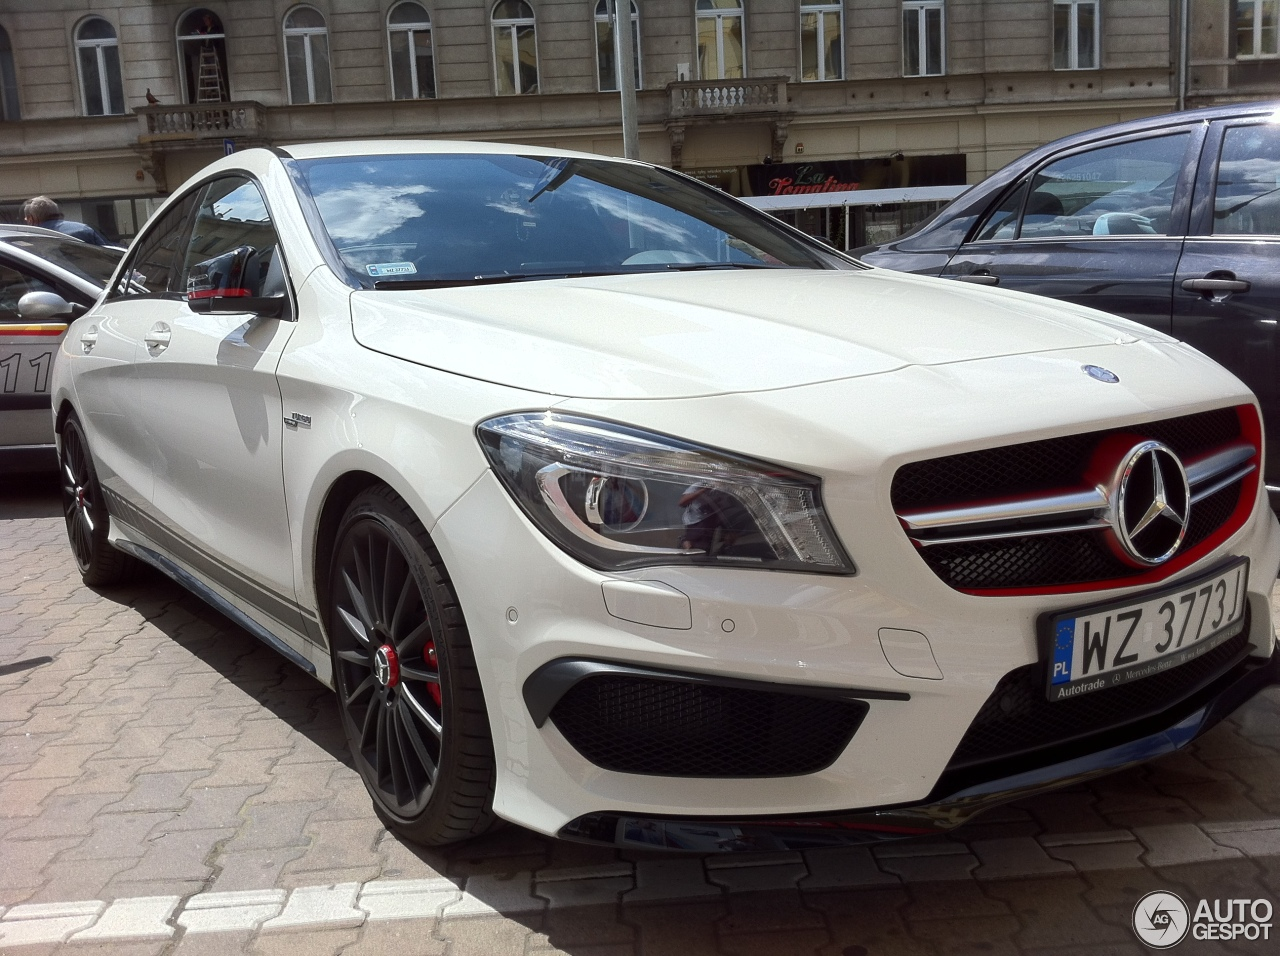 Mercedes benz cla 45 amg edition 1 c117 4 january 2015 for Mercedes benz cla 250 2010